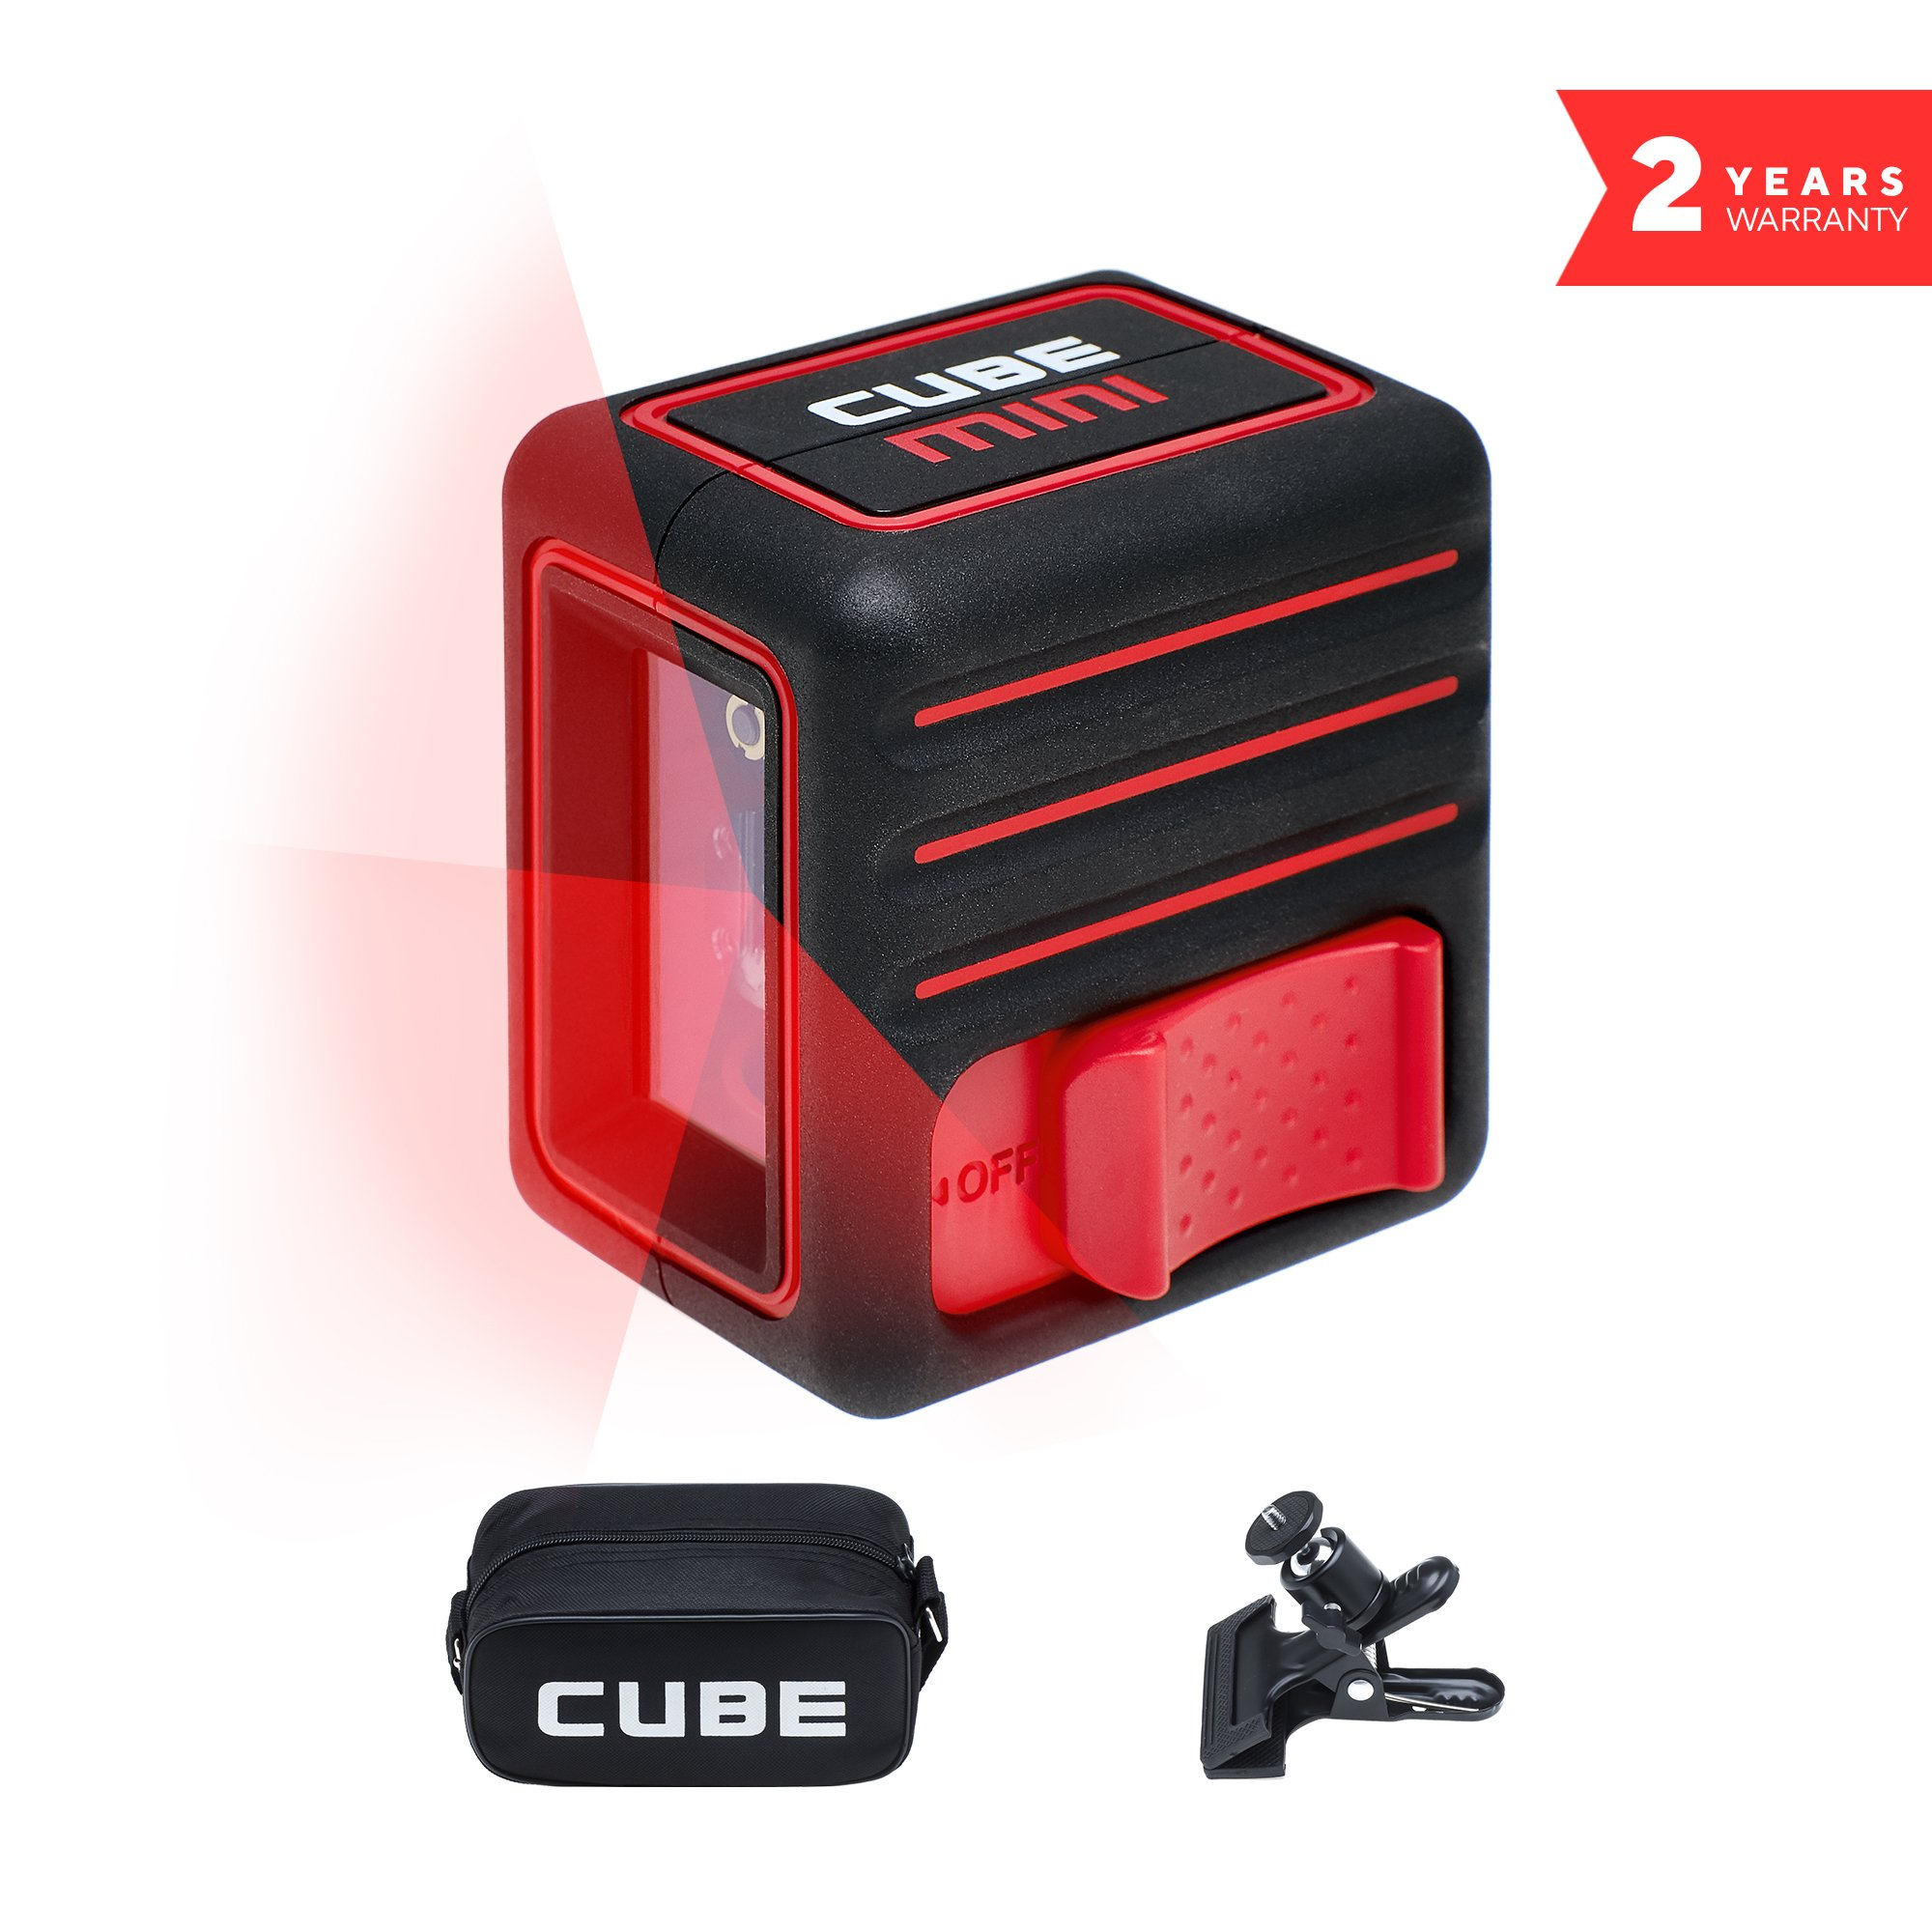 ADA Cube Mini home edition, Laser Level, 10 meters (32 feet), Black/Red, Crossline Self-Leveling Laser Level kit with Universal Mount, Carrying Pouch